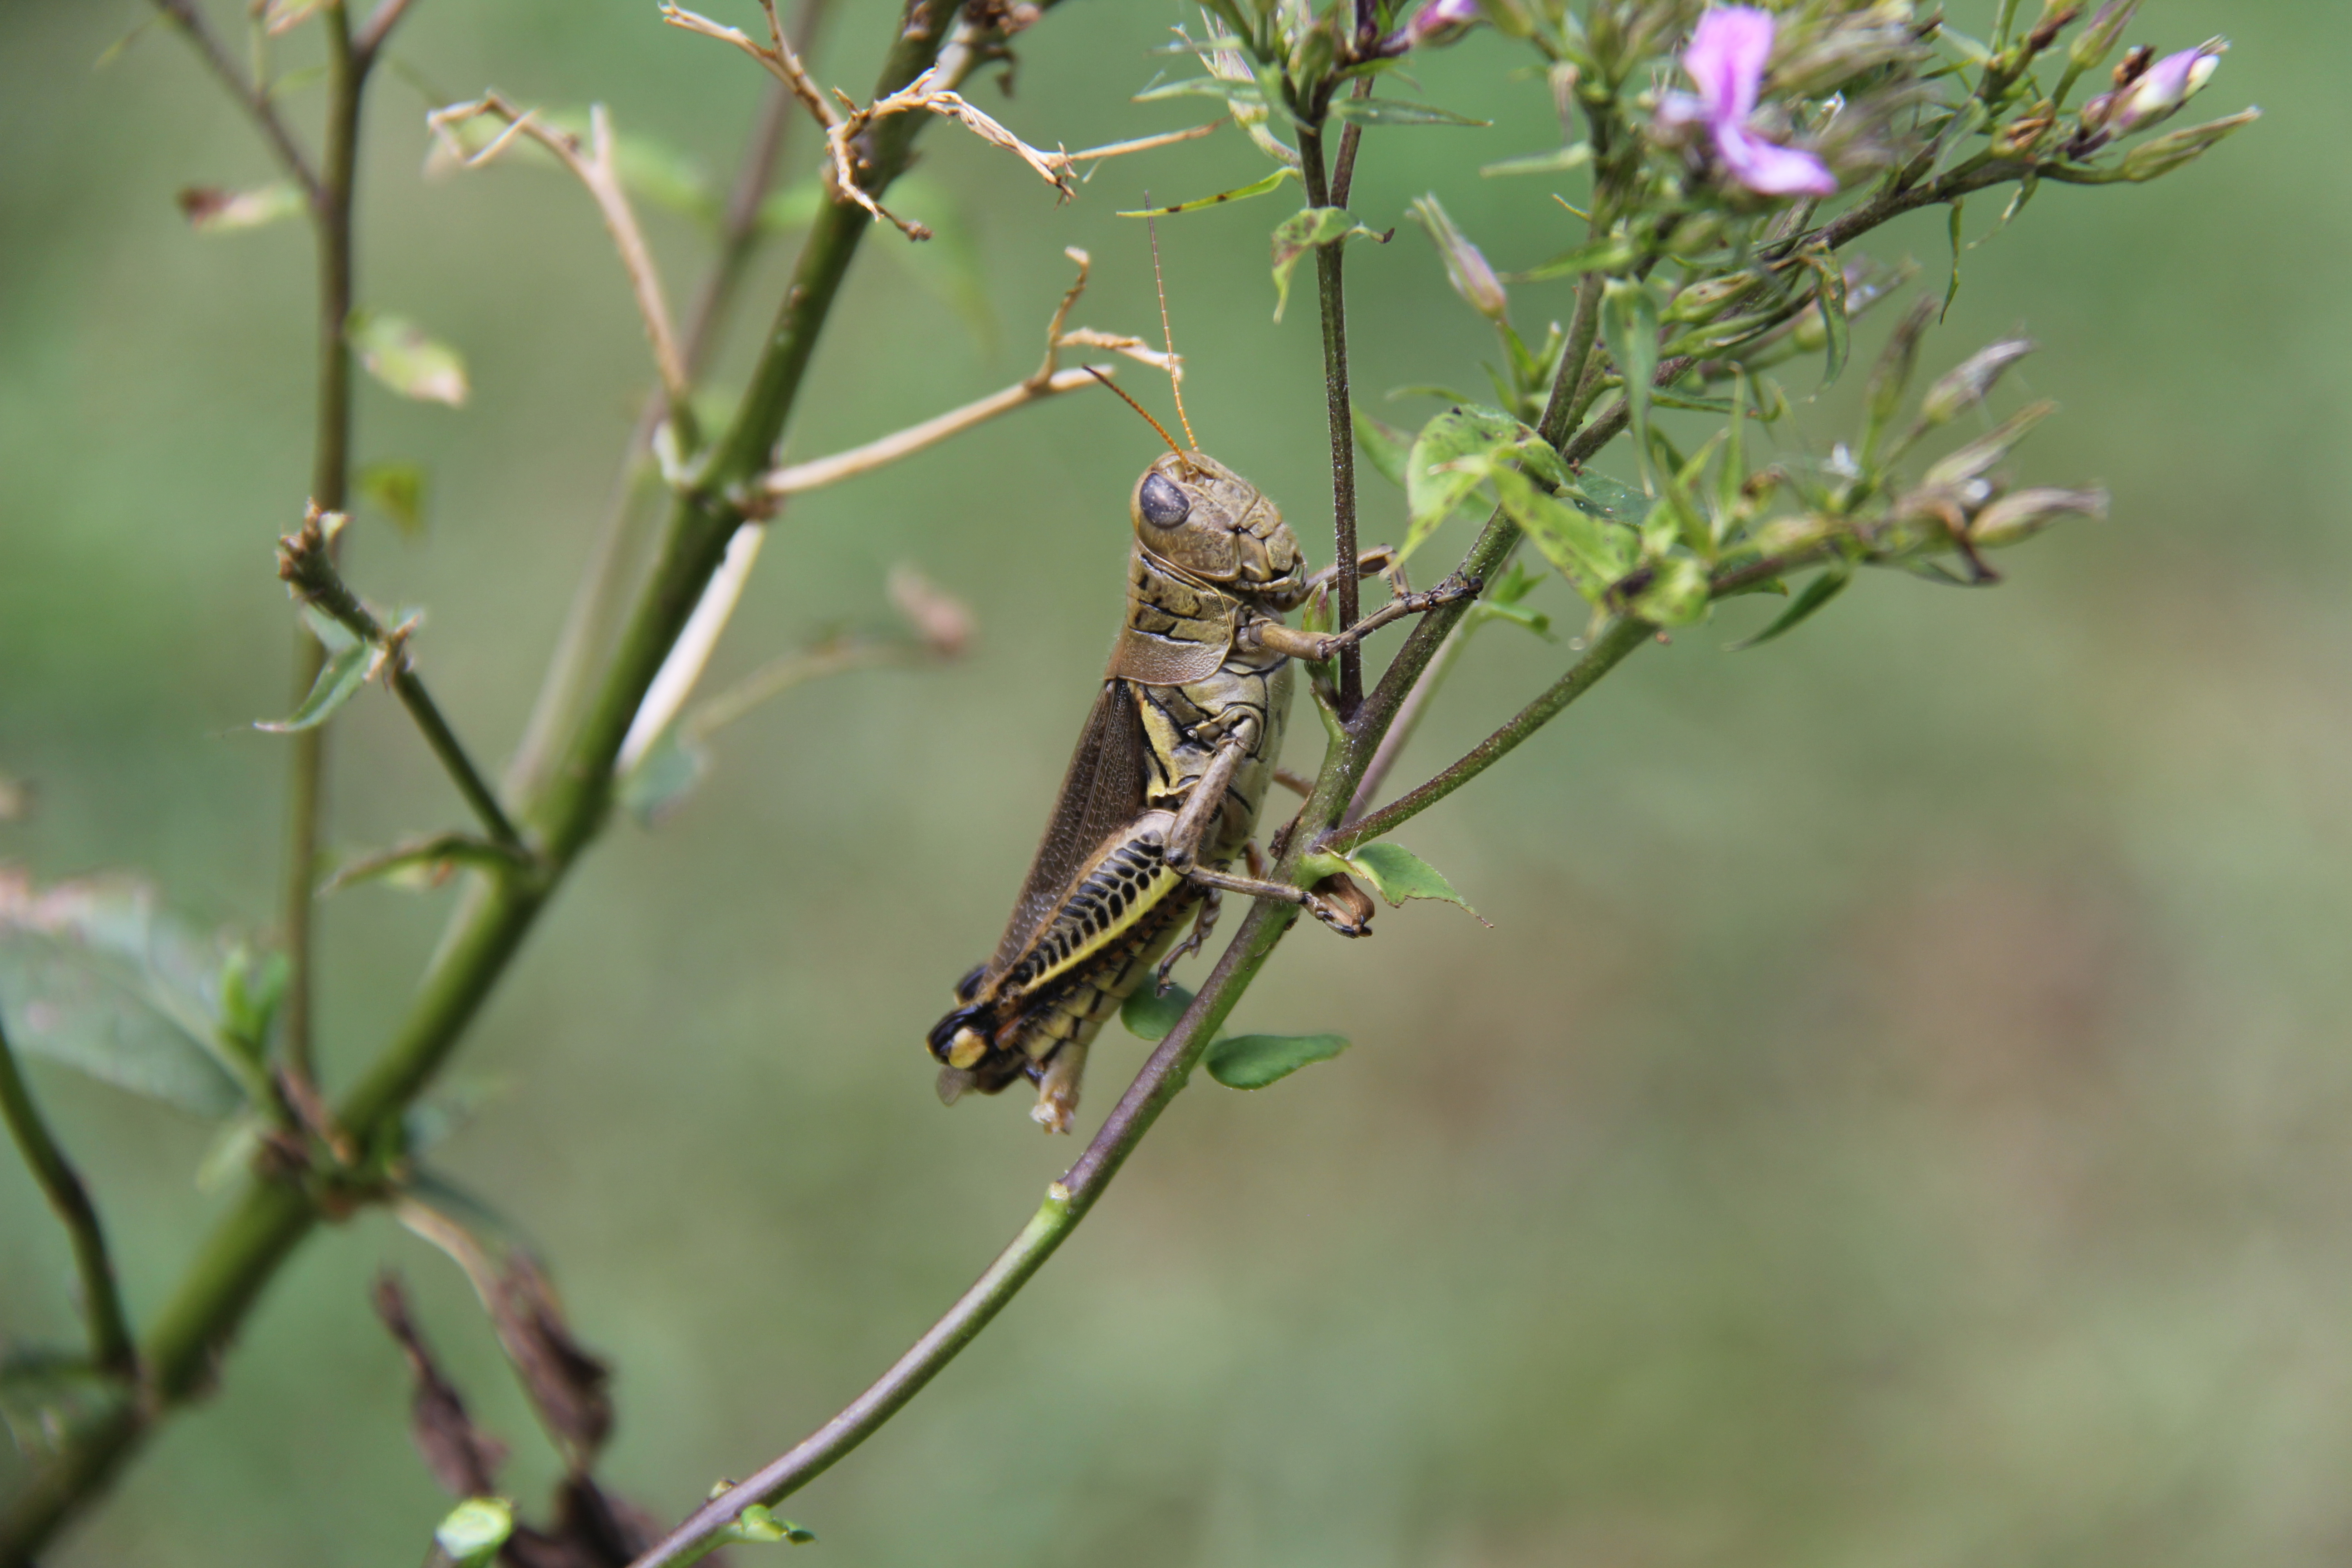 Grasshoppers were one of the arthropod taxa used in a novel long-term ecological site study.